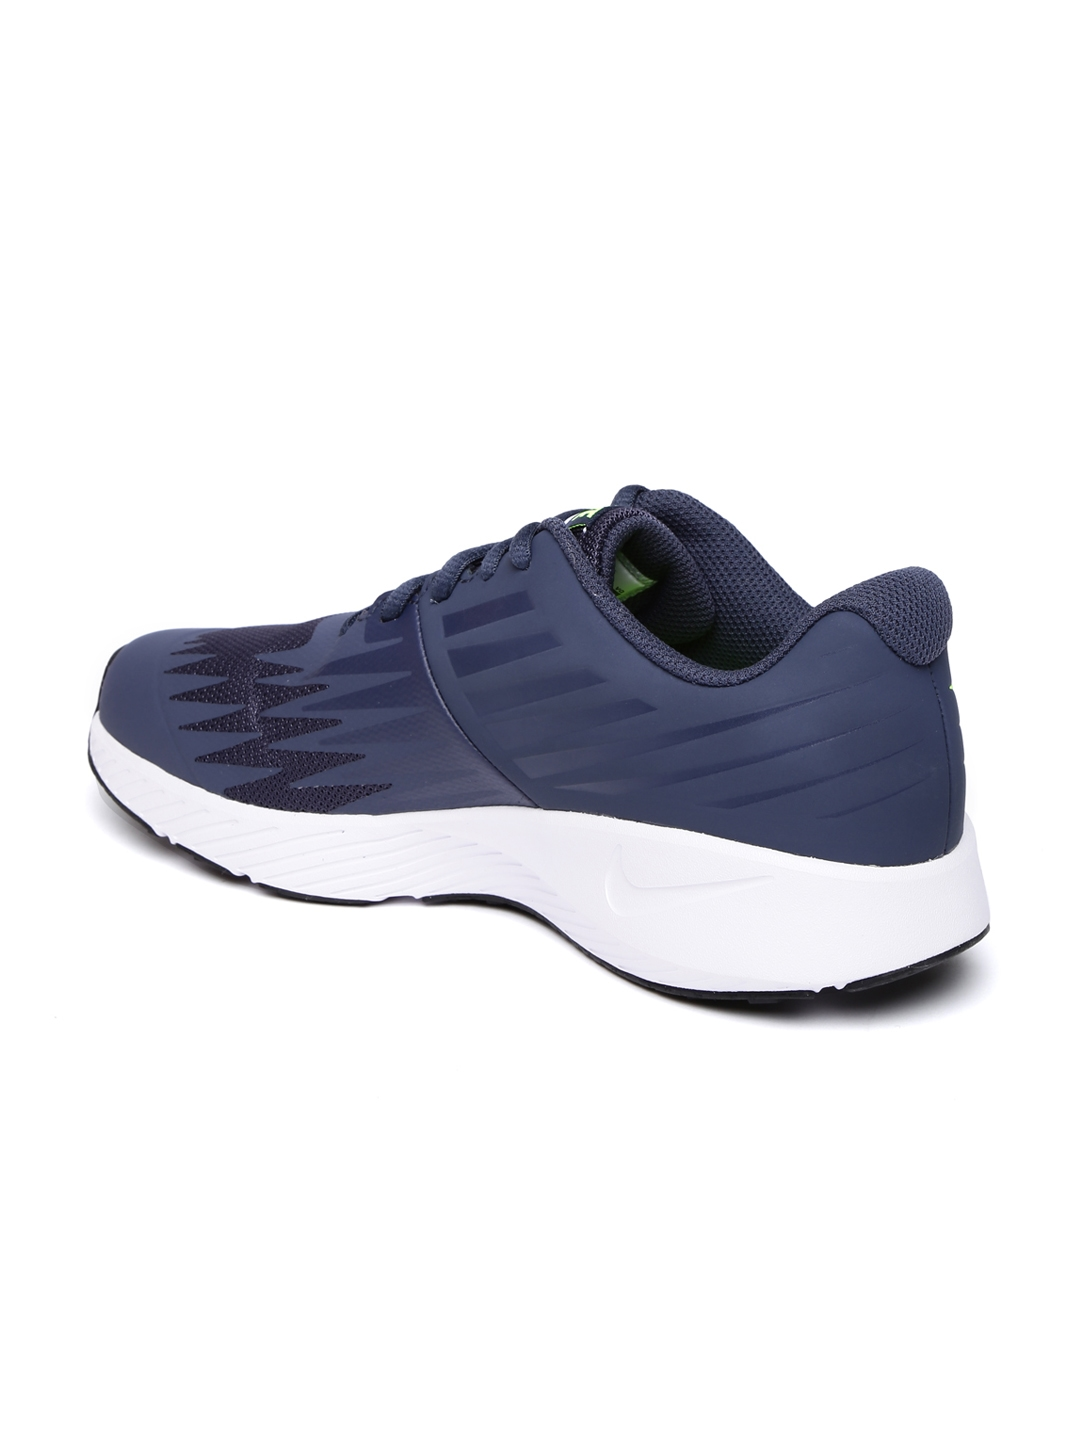 adcaa3cc71a439 Buy Nike Boys Navy Blue STAR RUNNER Running Shoes - Sports Shoes for ...